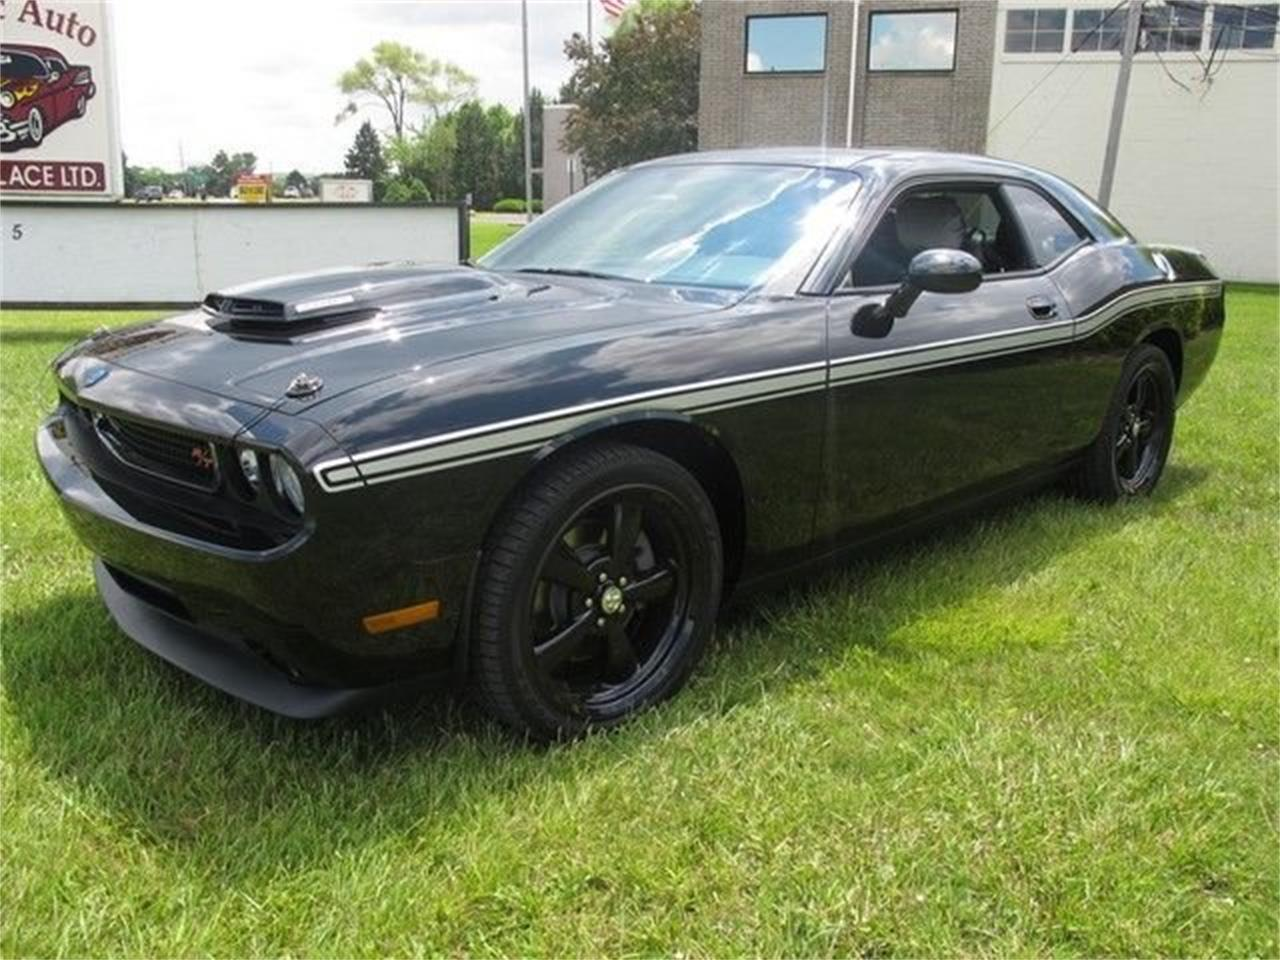 2010 Dodge Challenger (CC-1100453) for sale in Troy, Michigan